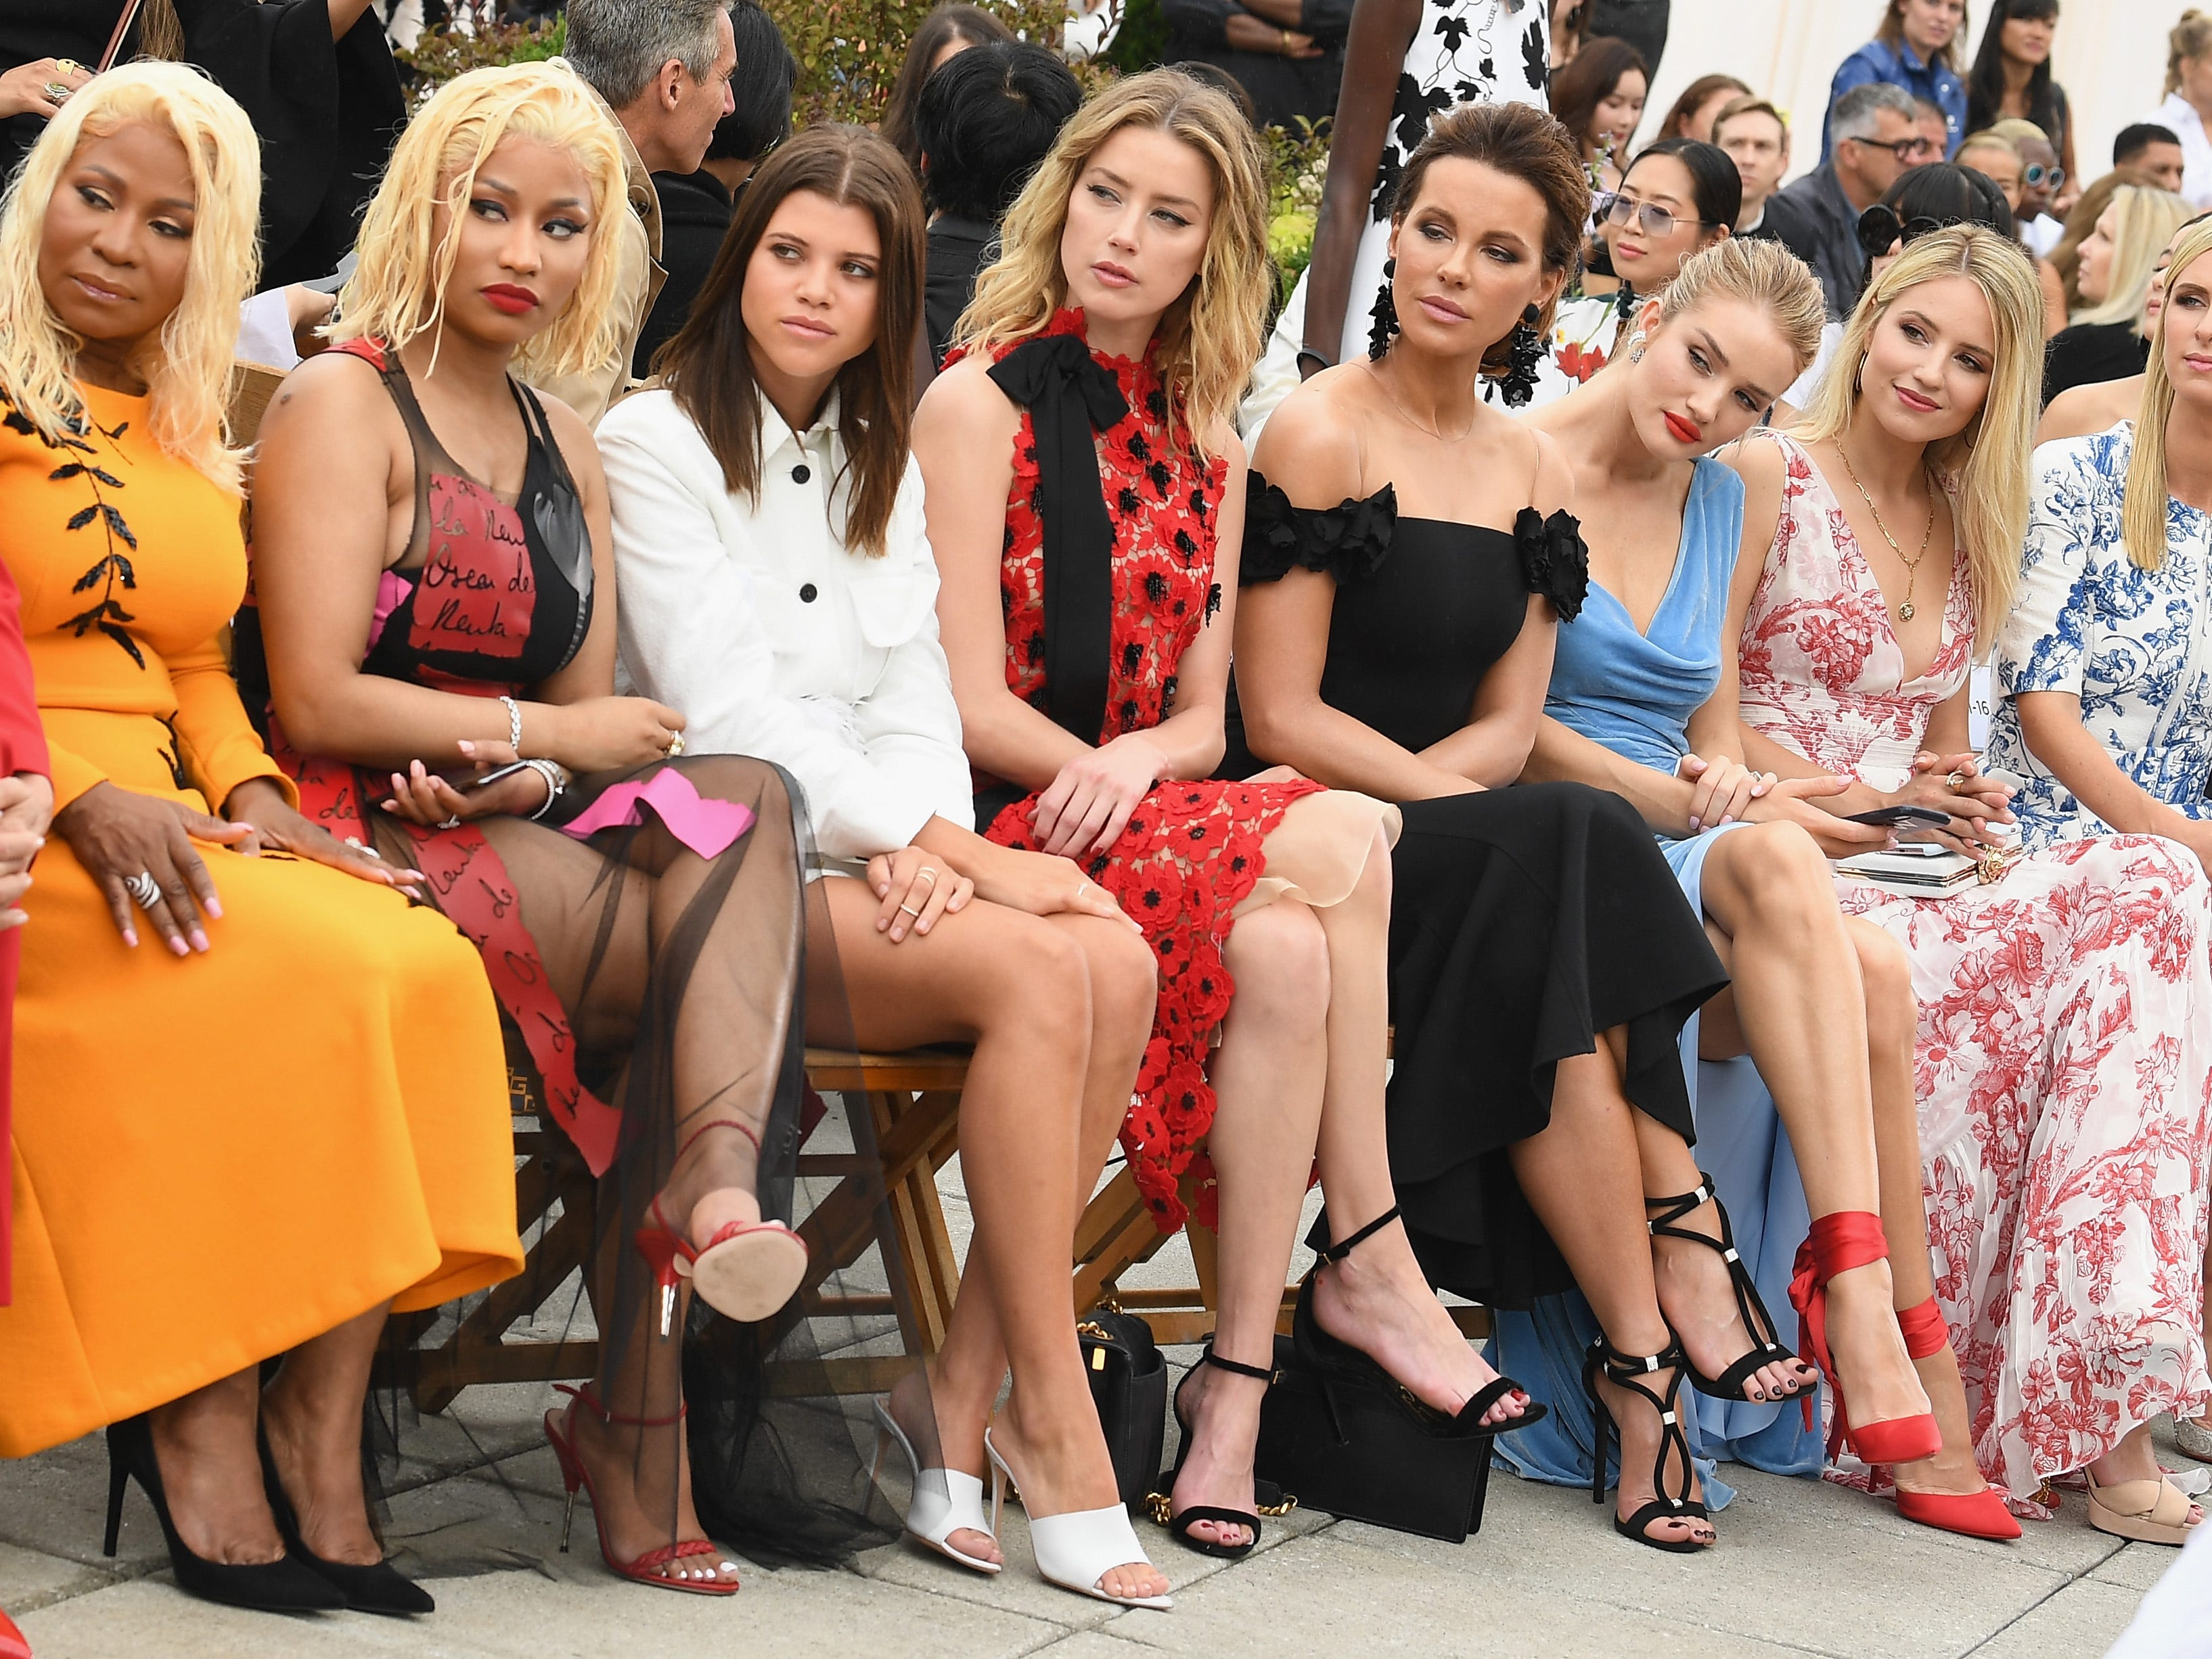 NEW YORK, NY - SEPTEMBER 11:  (L-R) Carol Maraj, Nicki Minaj, Sofia Richie, Amber Heard, Kate Beckinsale, Rosie Huntington-Whiteley, Dianna Agron and Nicky Hilton Rothschild attend the Oscar De La Renta front Row during New York Fashion Week: The Shows at Spring Studios Terrace on September 11, 2018 in New York City.